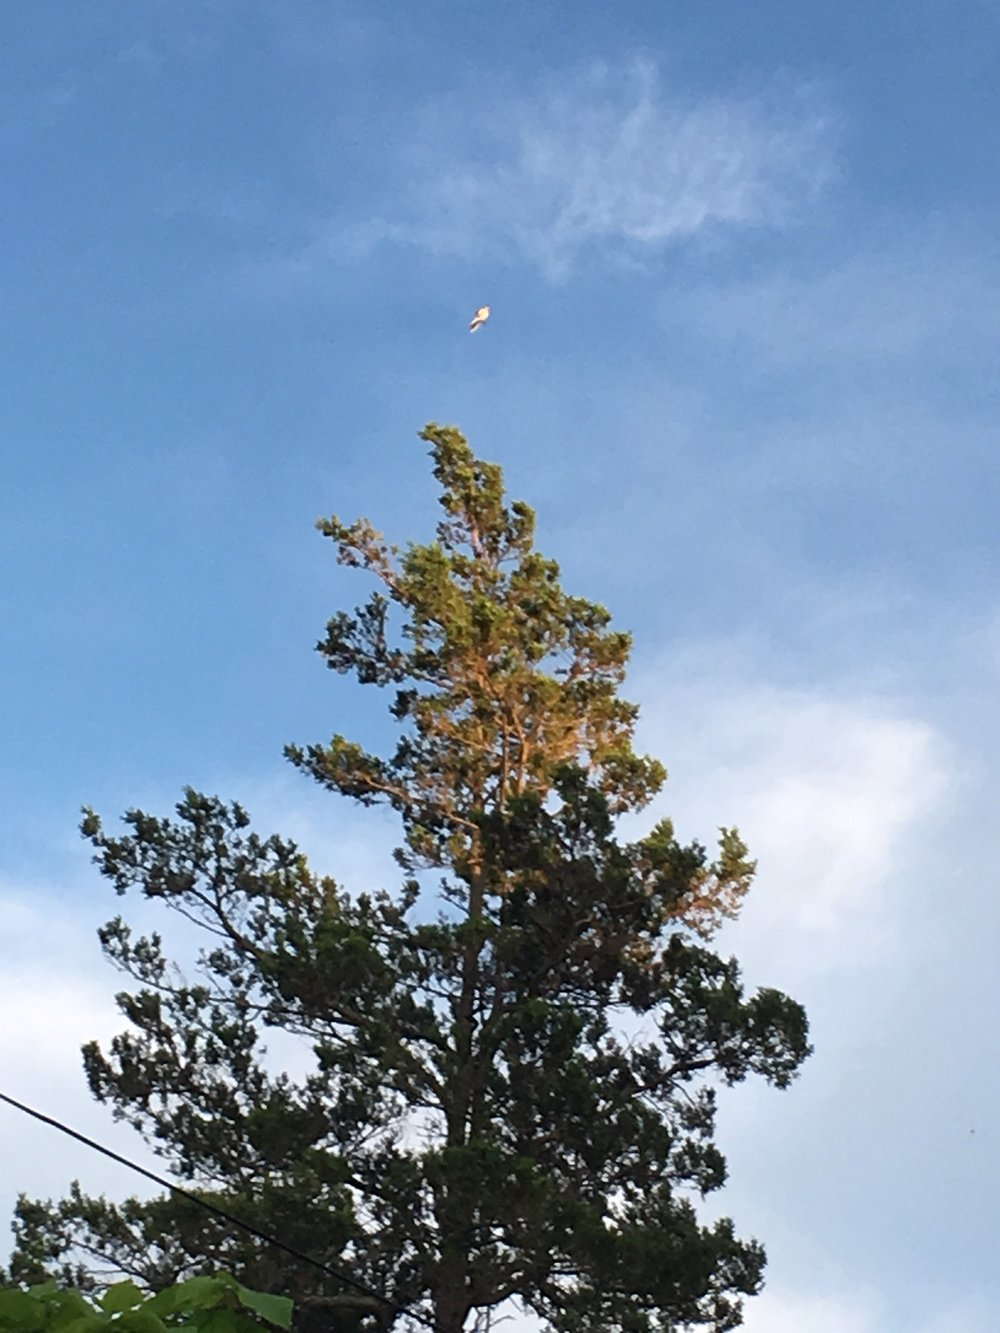 And lastly, my favorite pine behind our house. The white speck is a mocking bird that was sitting in the tippy top branch and performing a complicated ritual.